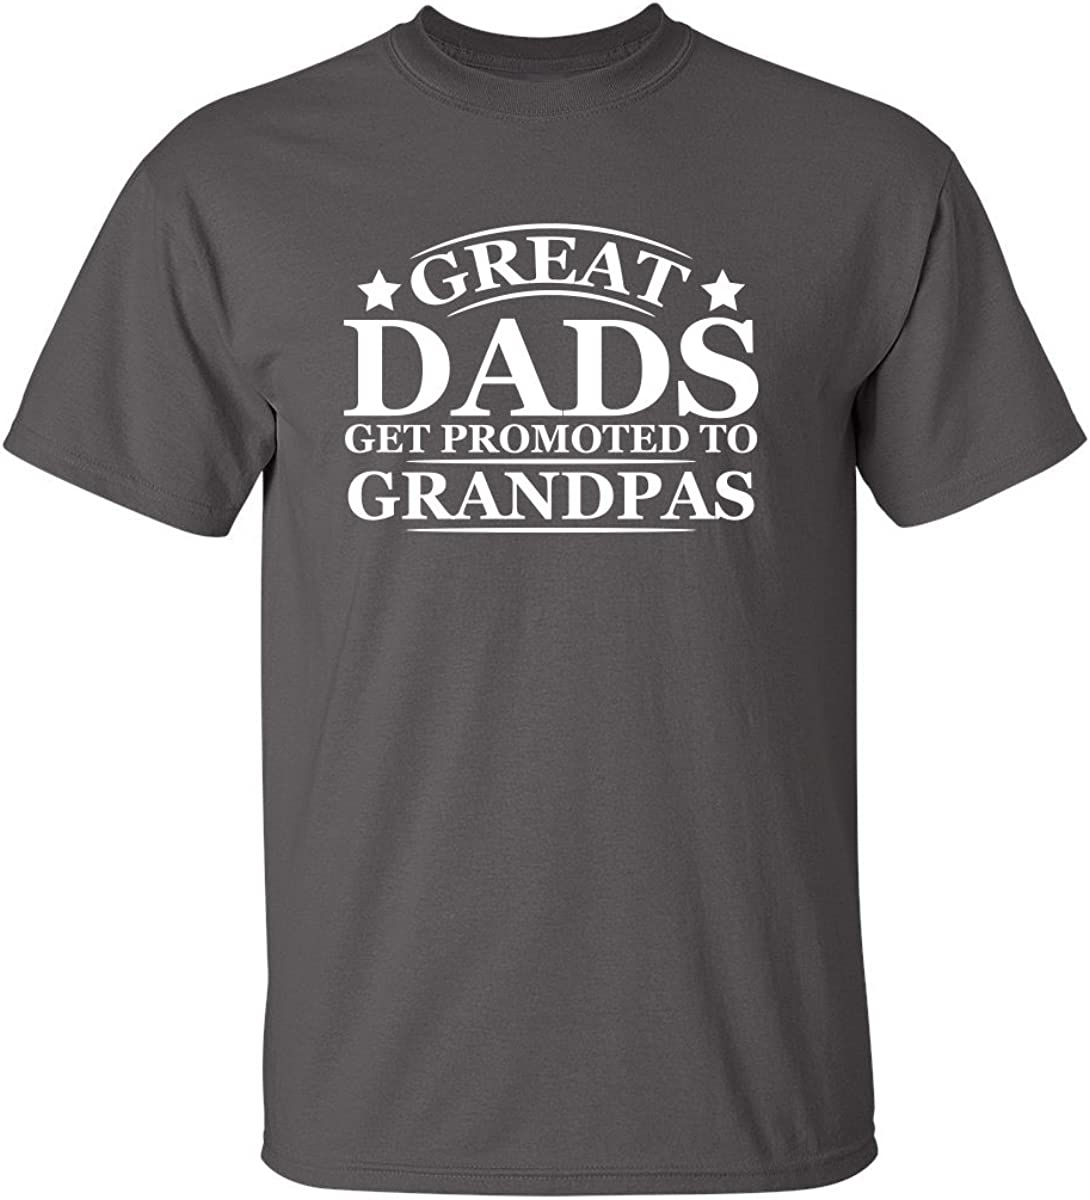 Great Dads Get Promoted to Grandpas Pops Mens Graphic Novelty Funny T Shirt